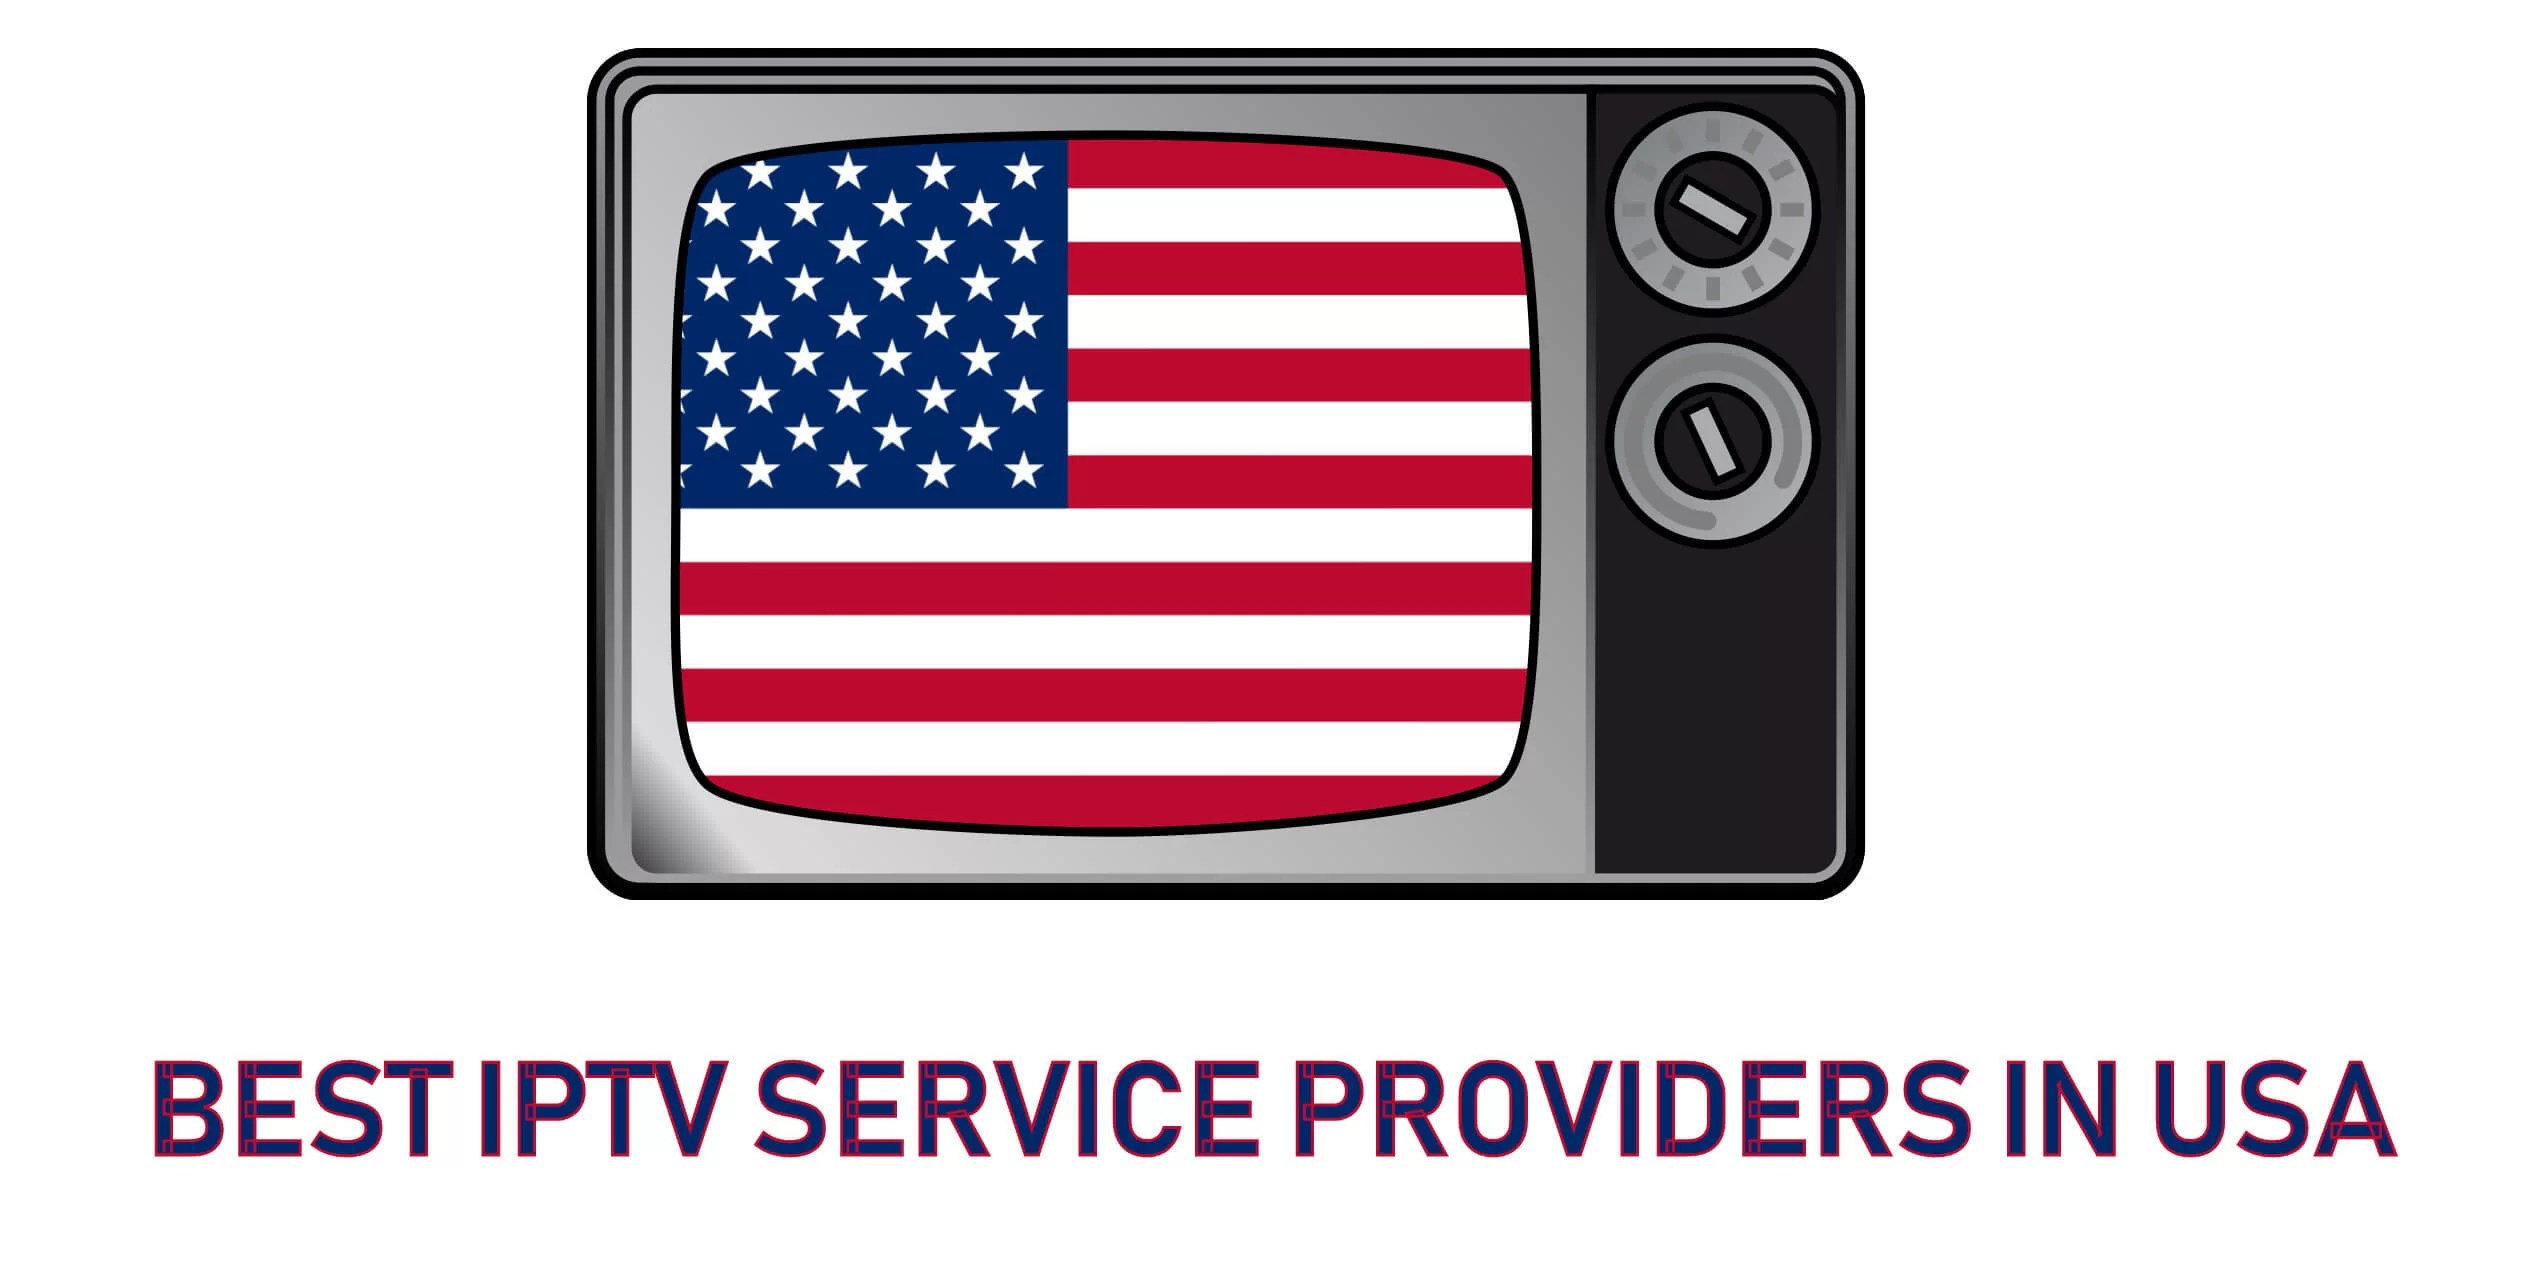 Top 10 IPTV for USA | Best IPTV Providers in USA - Firesticks Apps Tips